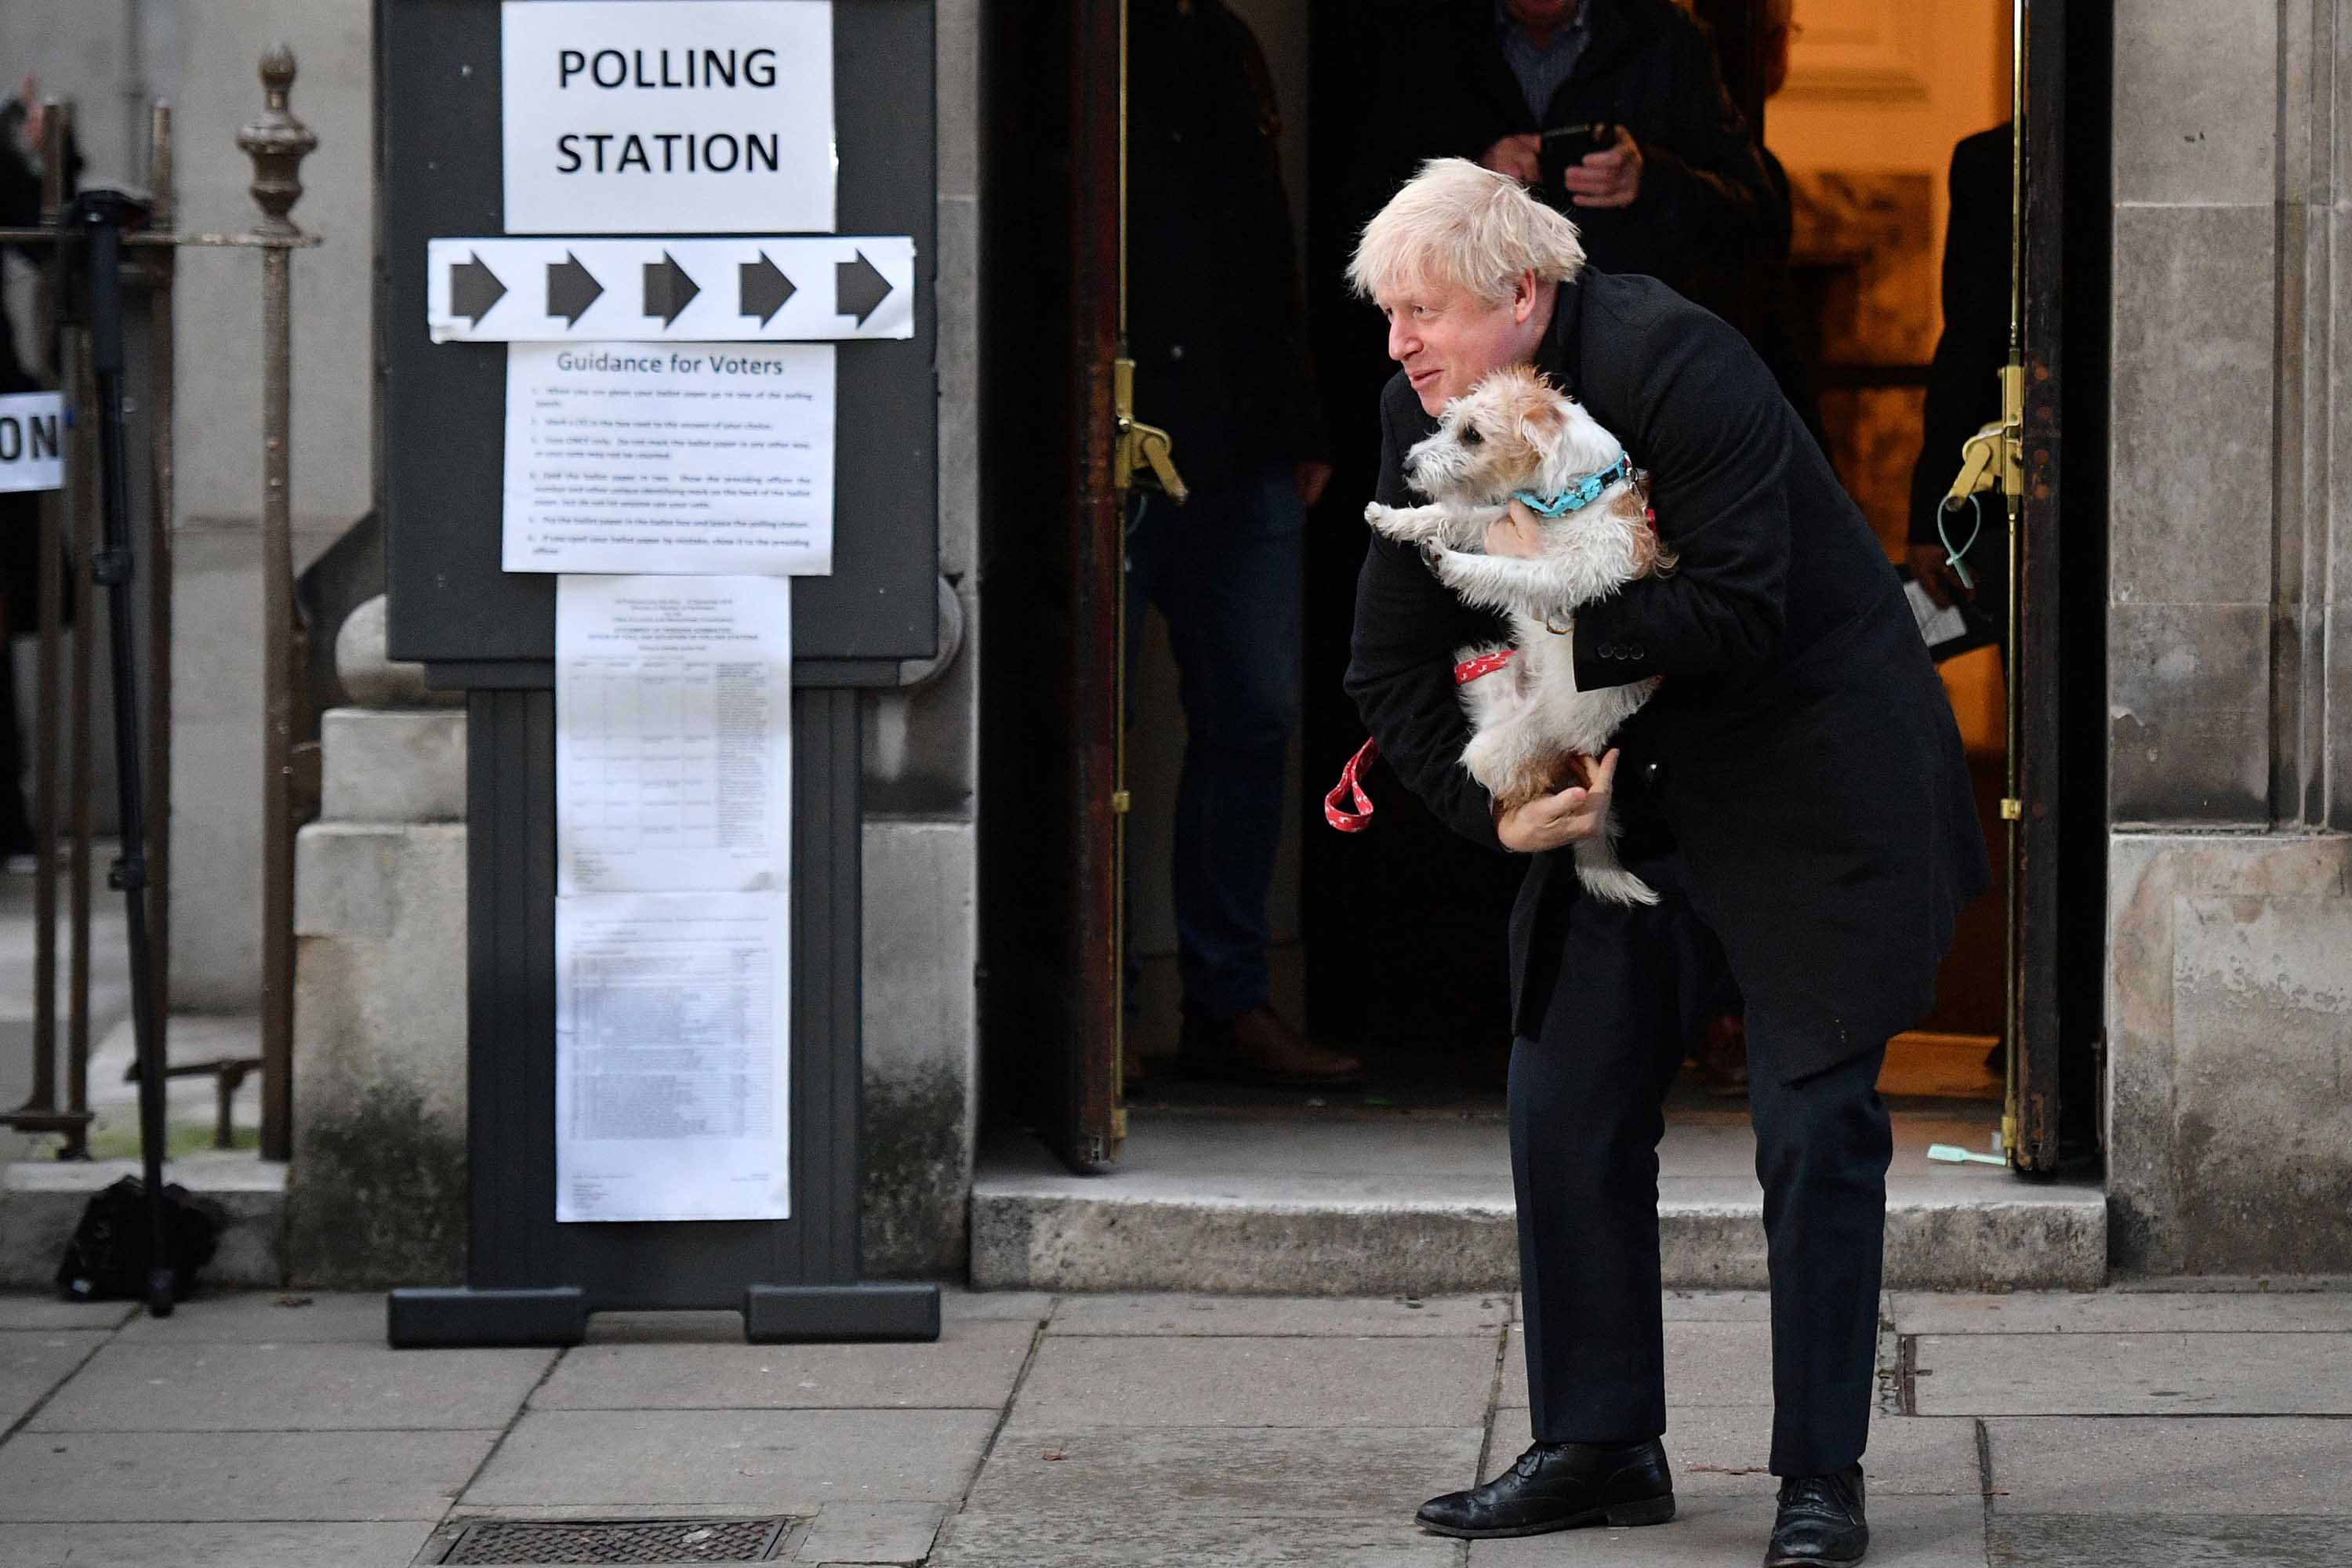 Boris Johnson takes his dog to polling booth for UK elections today (photos)